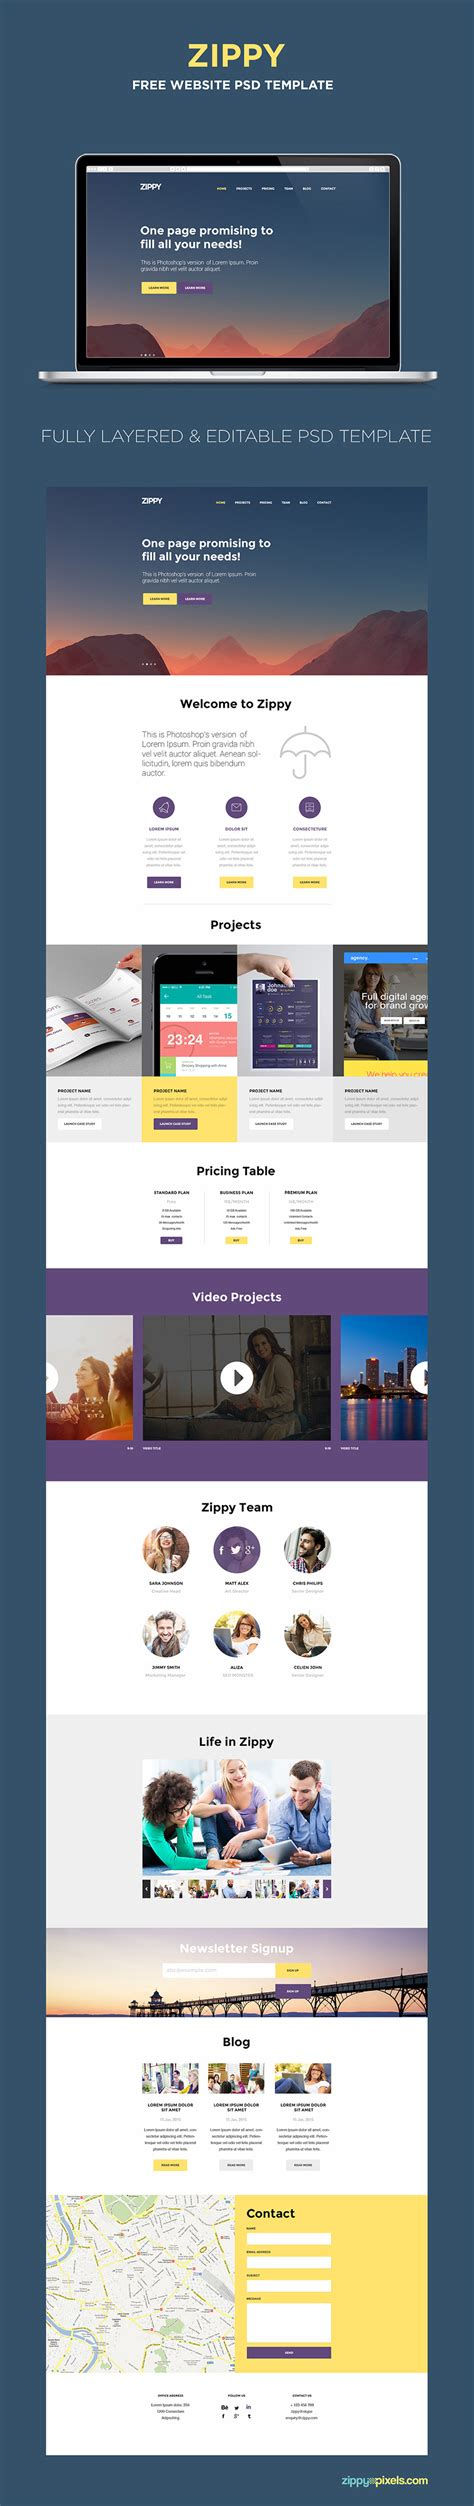 free one page website template free one page website template psd zippypixels